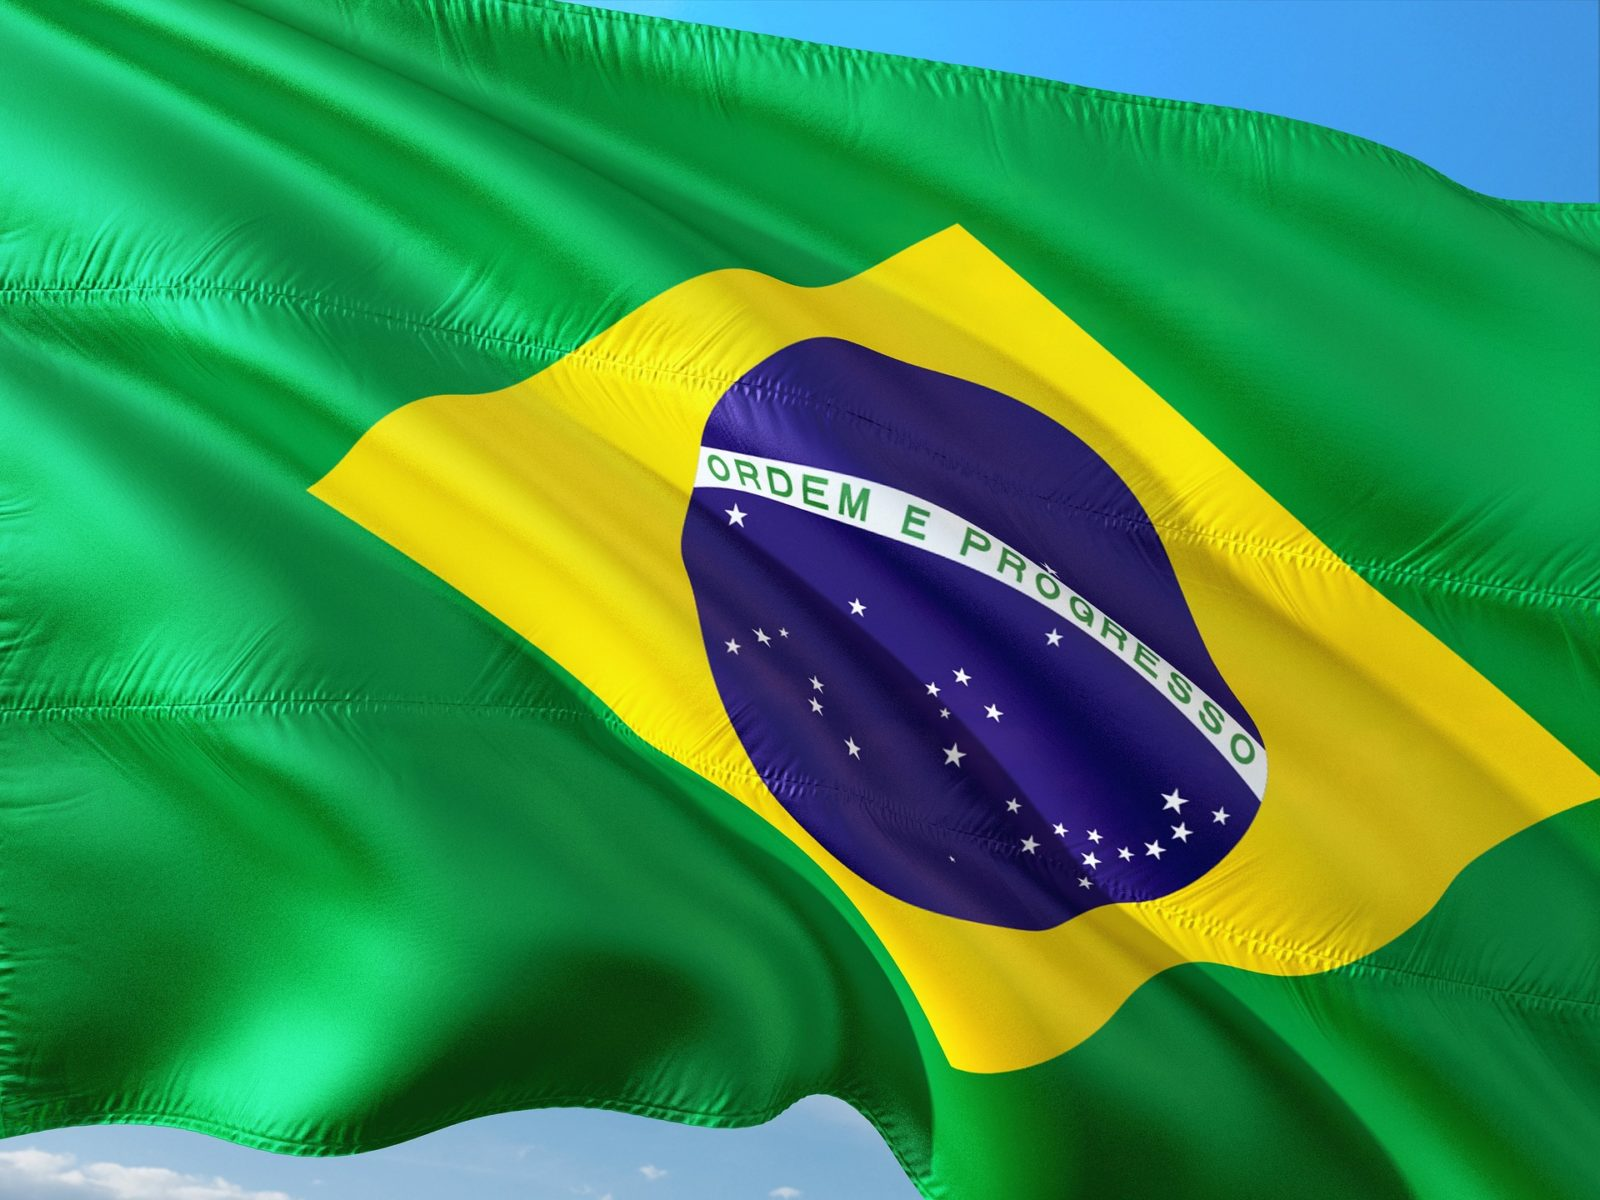 2019 Could Be Pivotal for Brazil; Markets are Already Off to a Strong Start